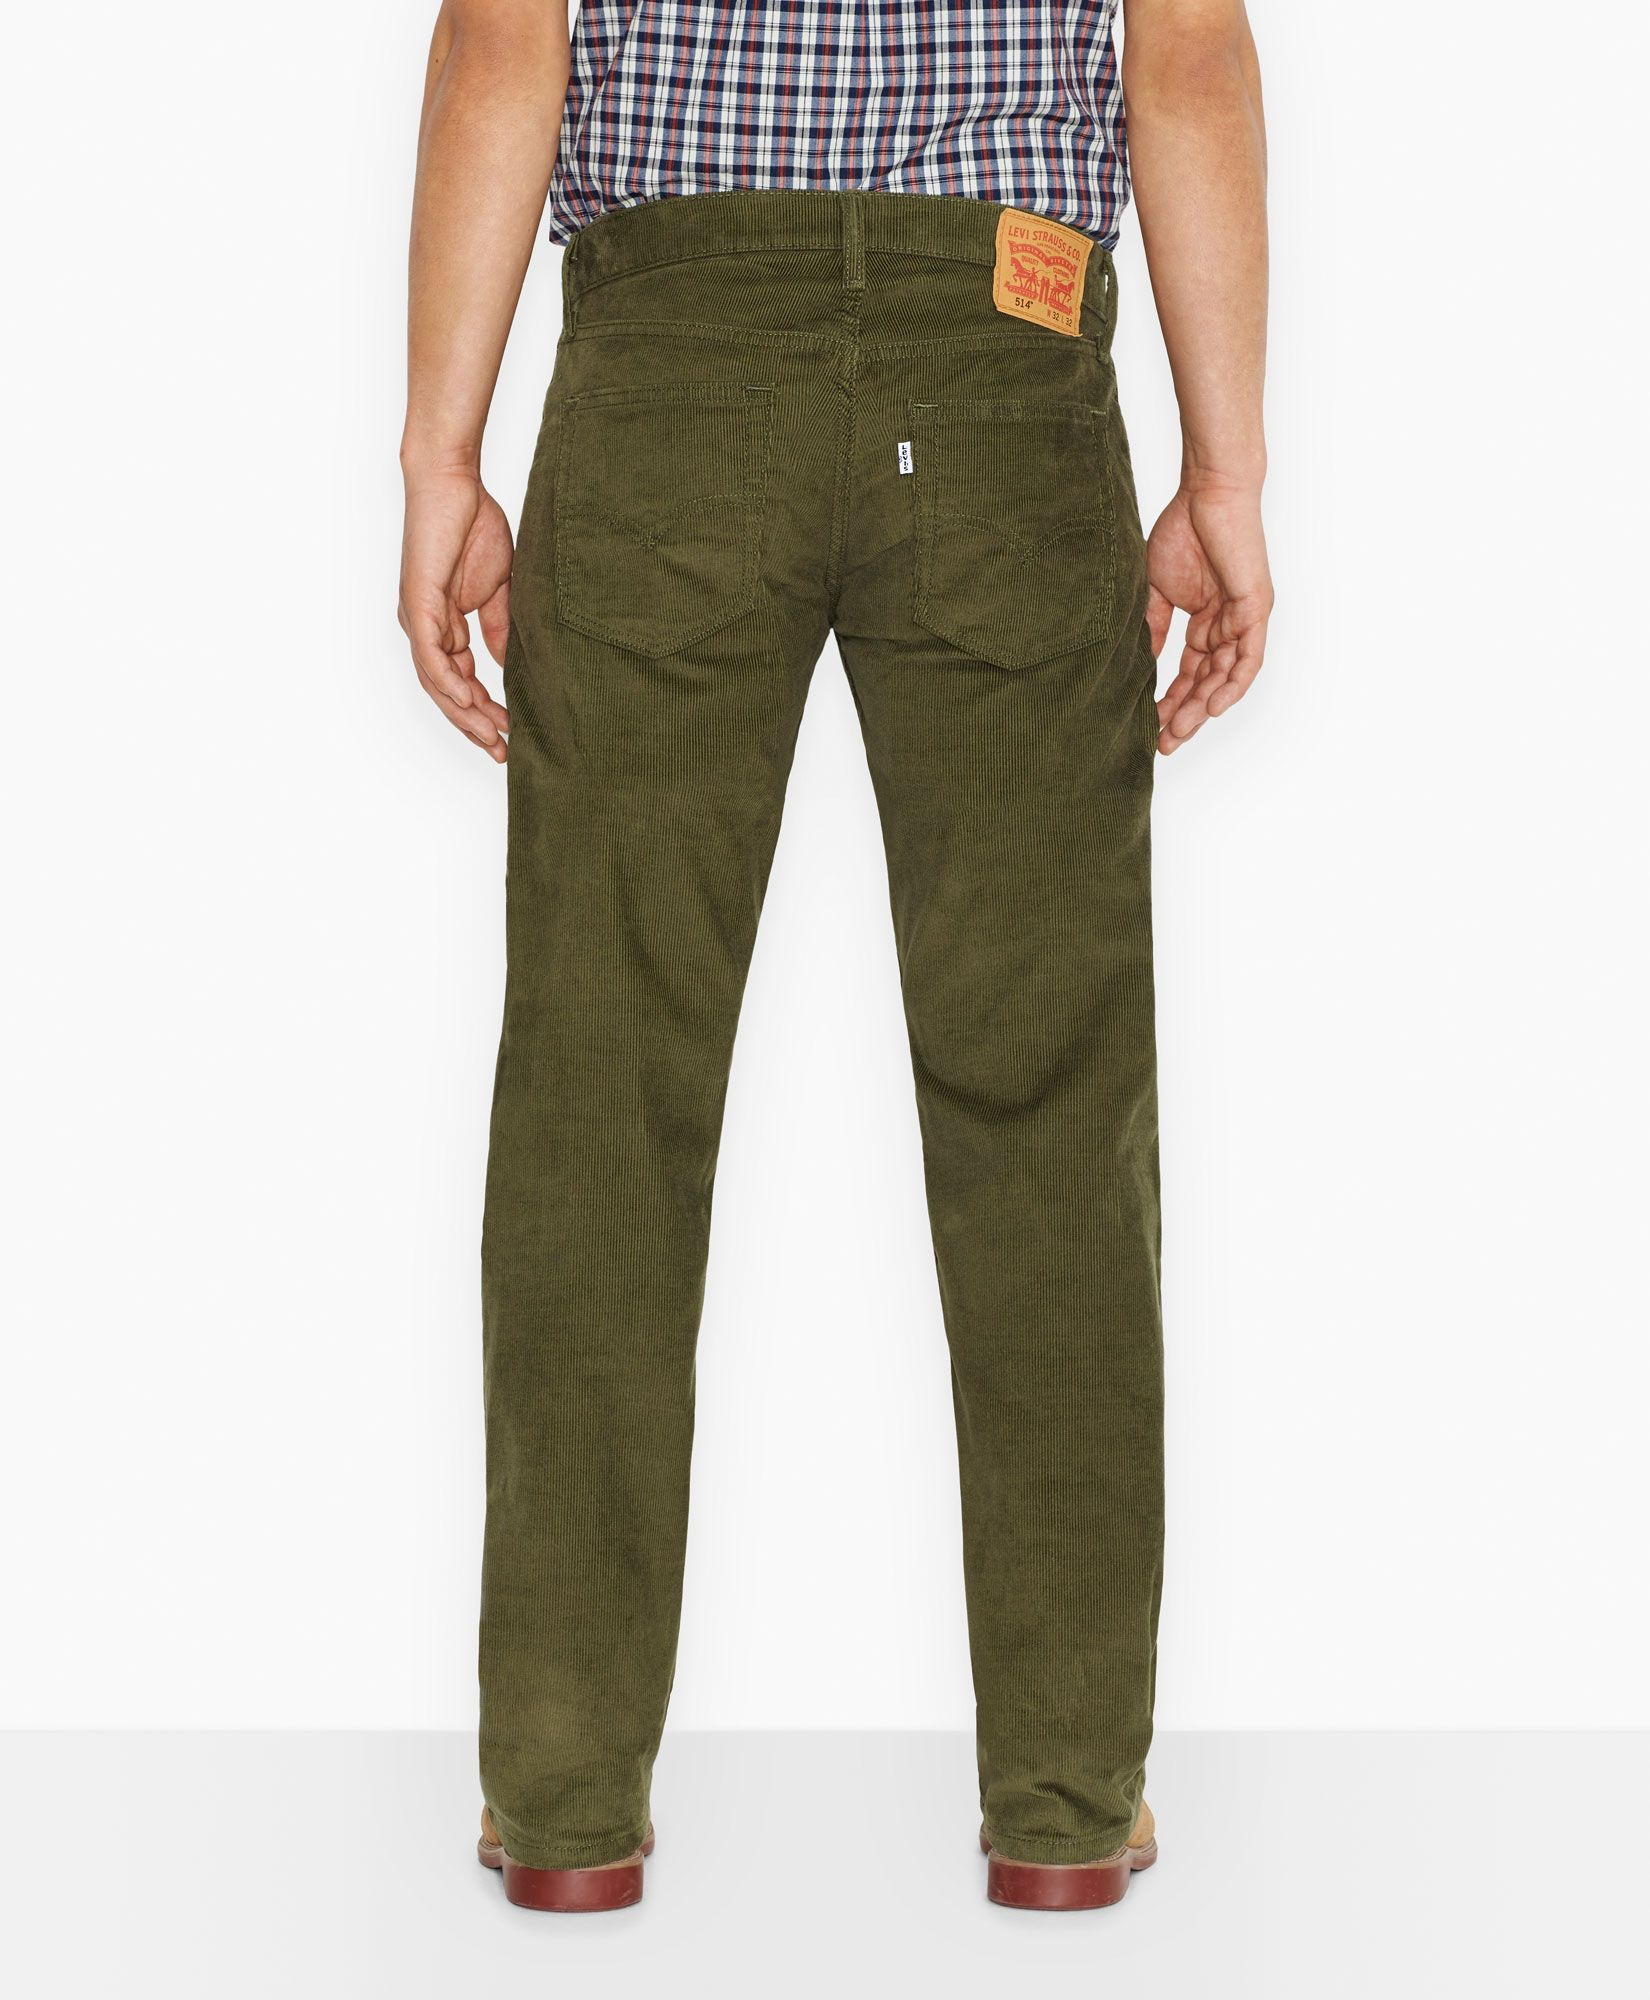 d940ea3b Levi's 514™ Straight Fit Corduroy Pants - Burnt Olive - Jeans | My ...